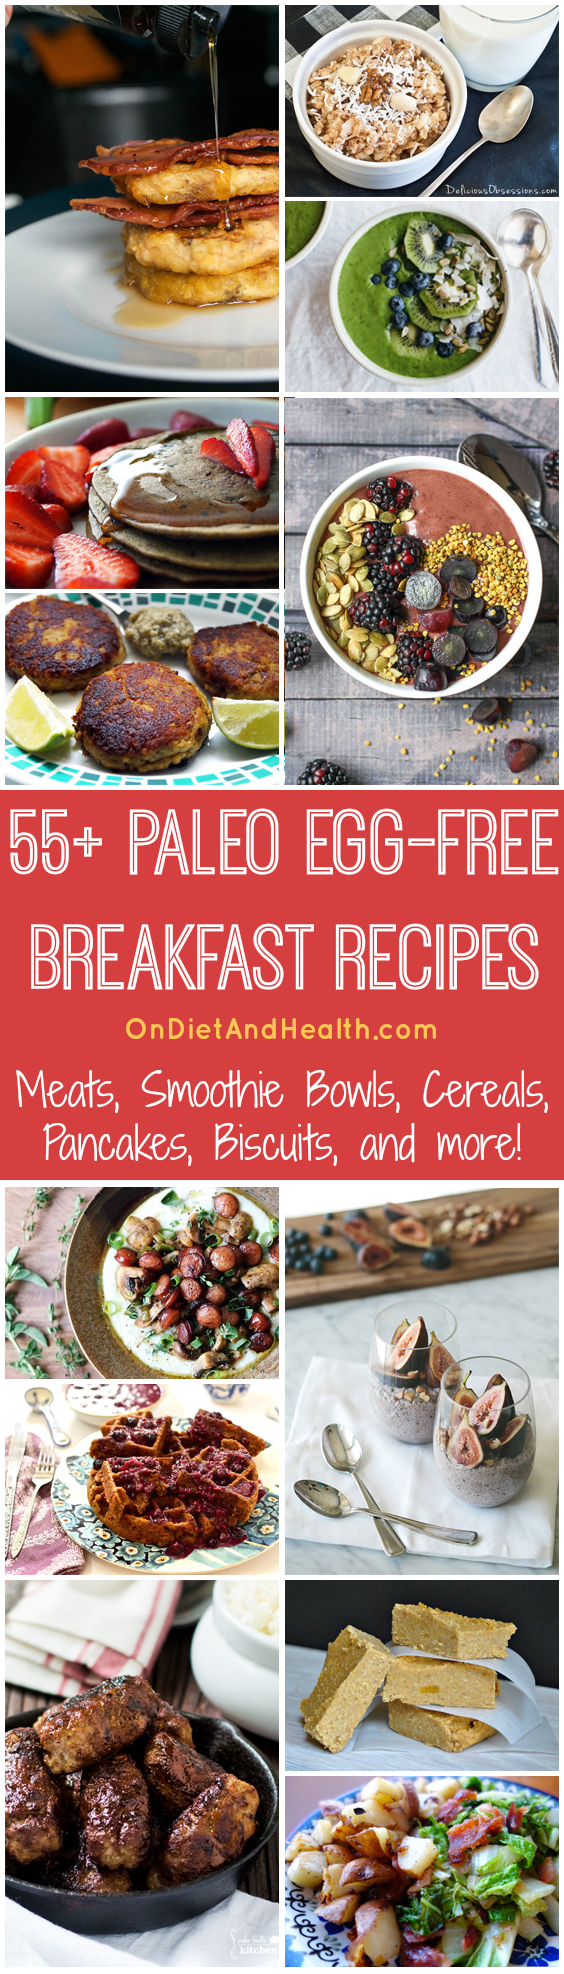 Looking for egg-free breakfast recipes for your Paleo or AIP lifestyle? Here's a big variety! All are free of eggs, gluten, grains, dairy and legumes. // OnDietandHealth.com